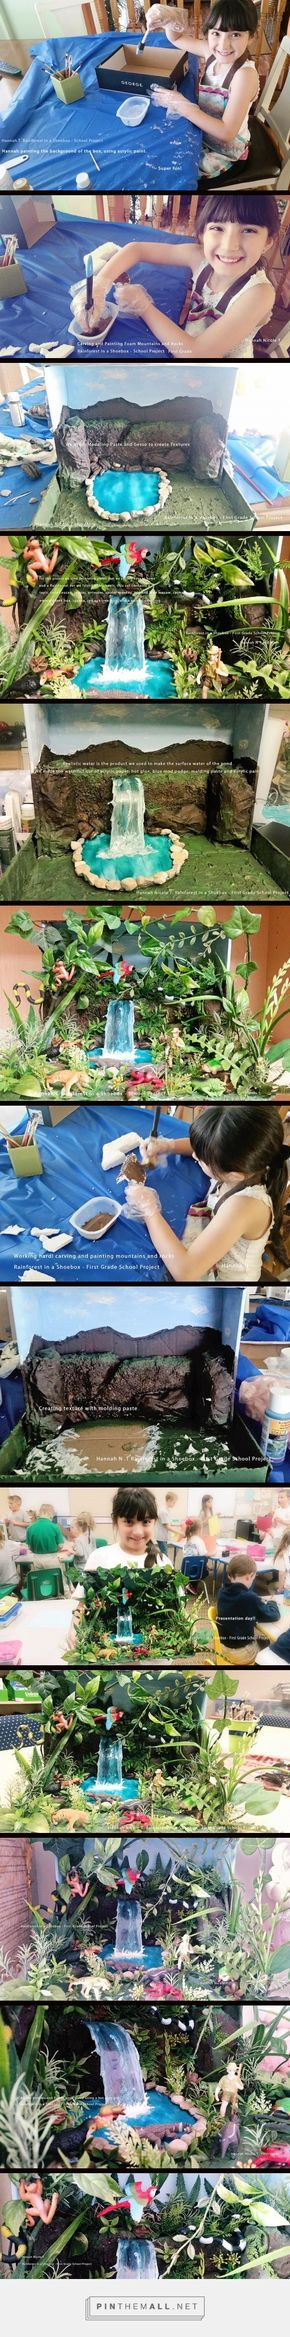 This is my version of the Rainforest shoebox diorama that we did with my daughter Hannah in first grade. Now she is a happy homeschooler.  I found a great video in YouTube  that inspired me to do this with confidence!. Here are the  photos of the steps and materials that I used  to make it. I didn't find a better way to upload the photos but if you know how to do it without using pinthemall, please let me know by leaving a comment!